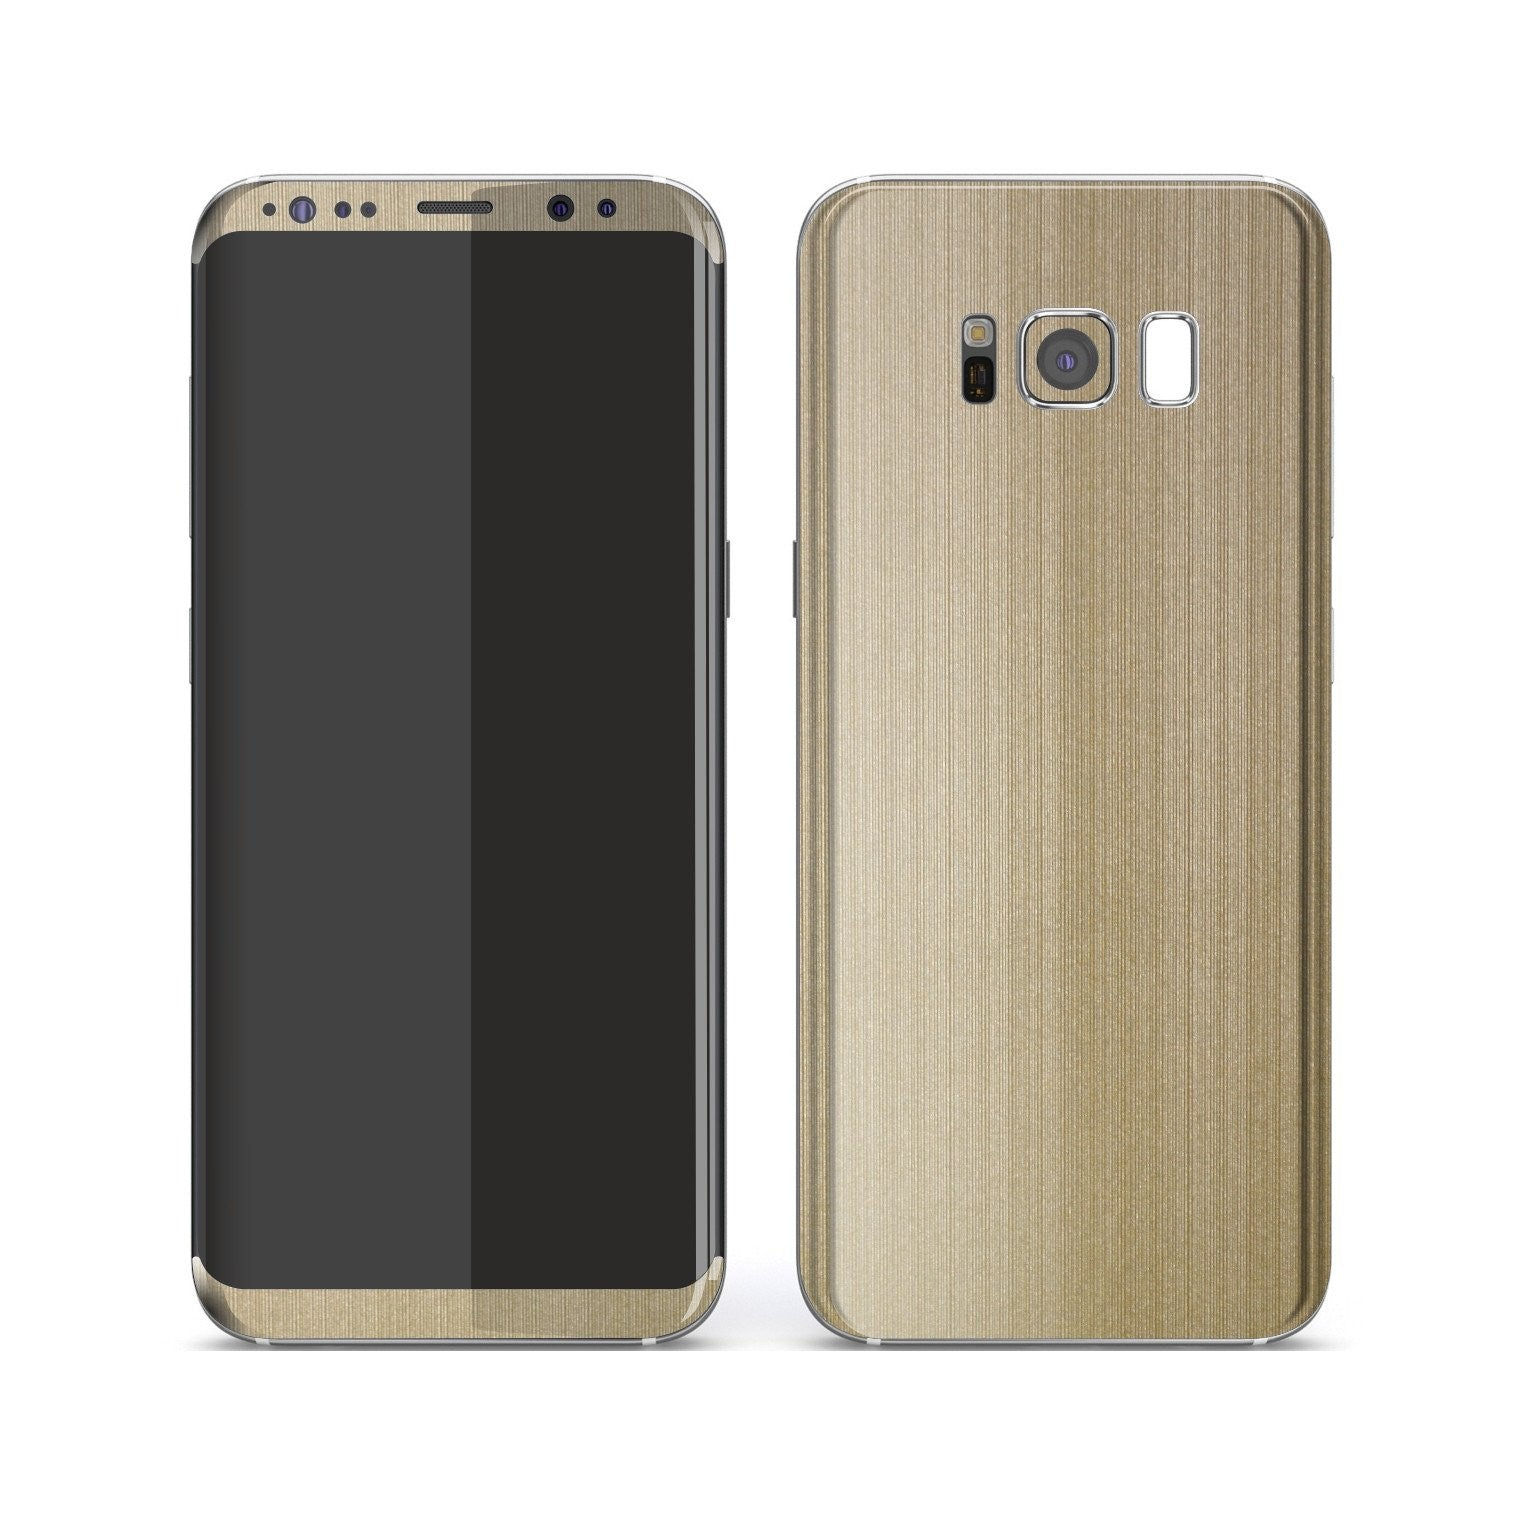 Samsung Galaxy S8+ Premium Brushed Champagne Gold Metallic Metal Skin, Decal, Wrap, Protector, Cover by EasySkinz | EasySkinz.com